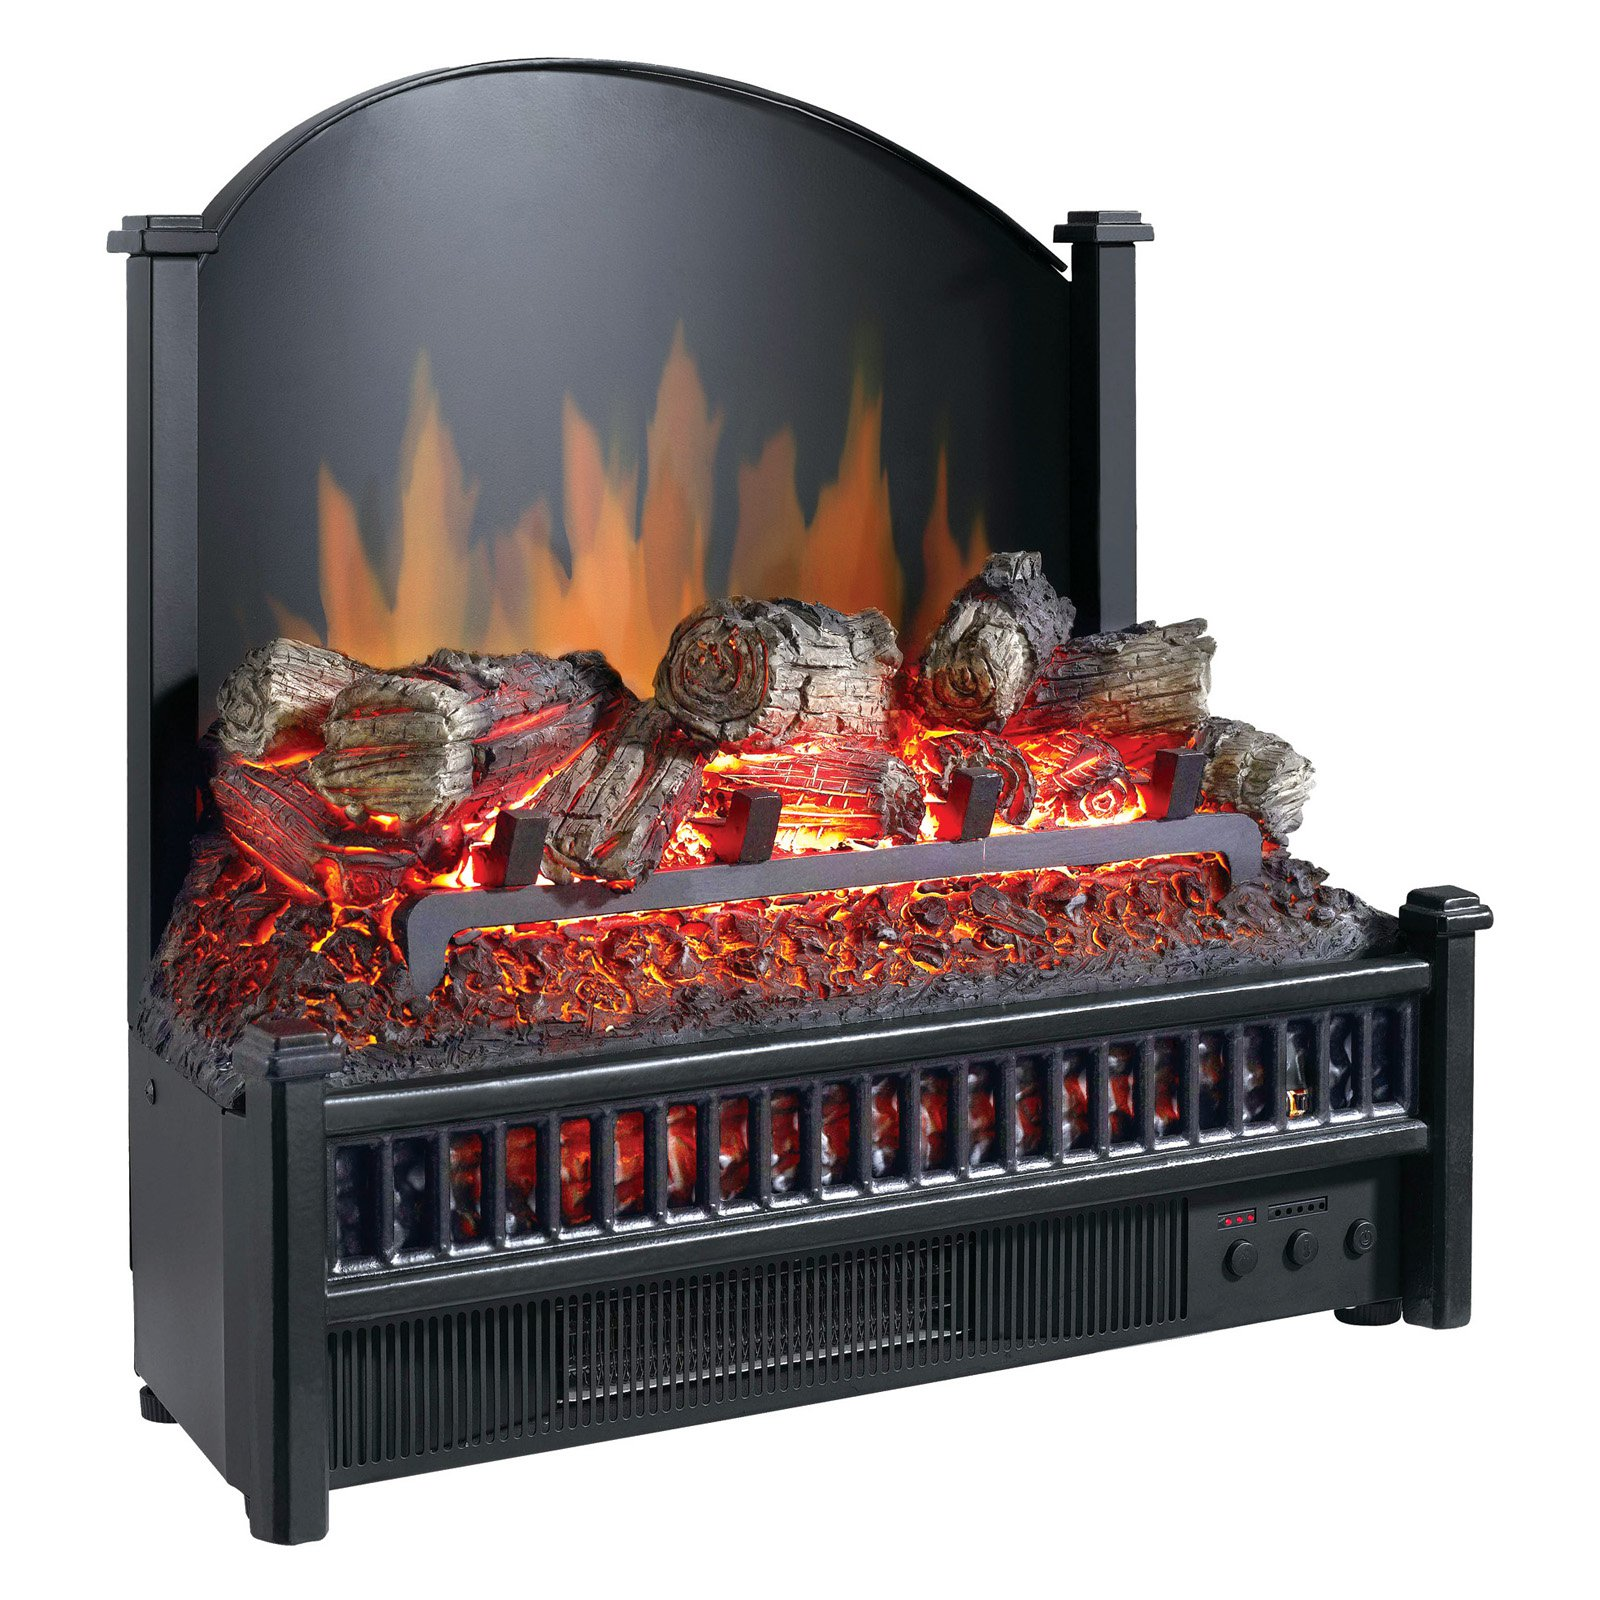 Pleasant Hearth Electric Log Insert with Heater, LI-24 - Walmart.com